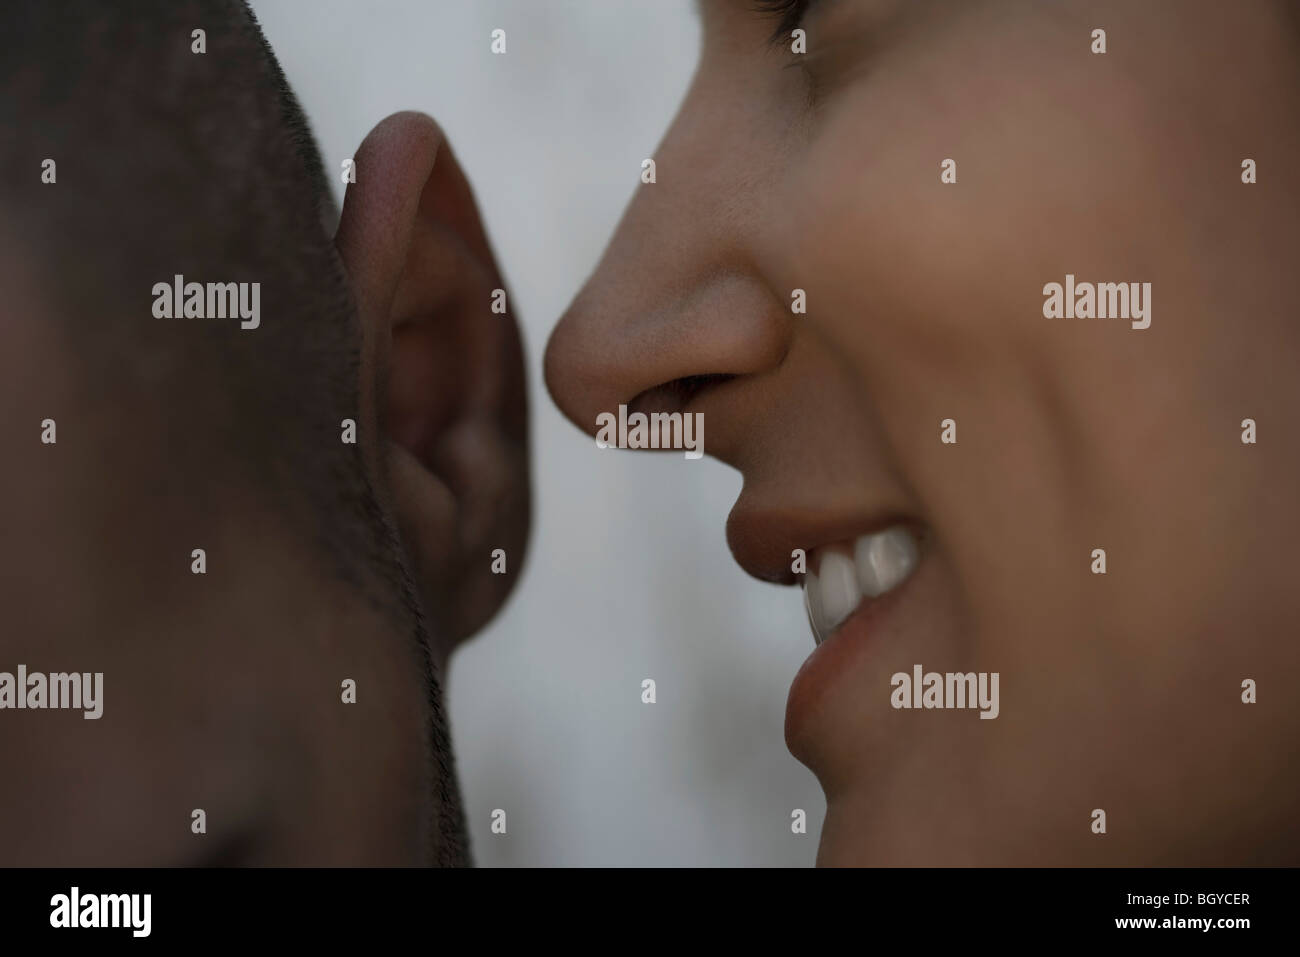 Woman whispering into man's ear, close-up - Stock Image